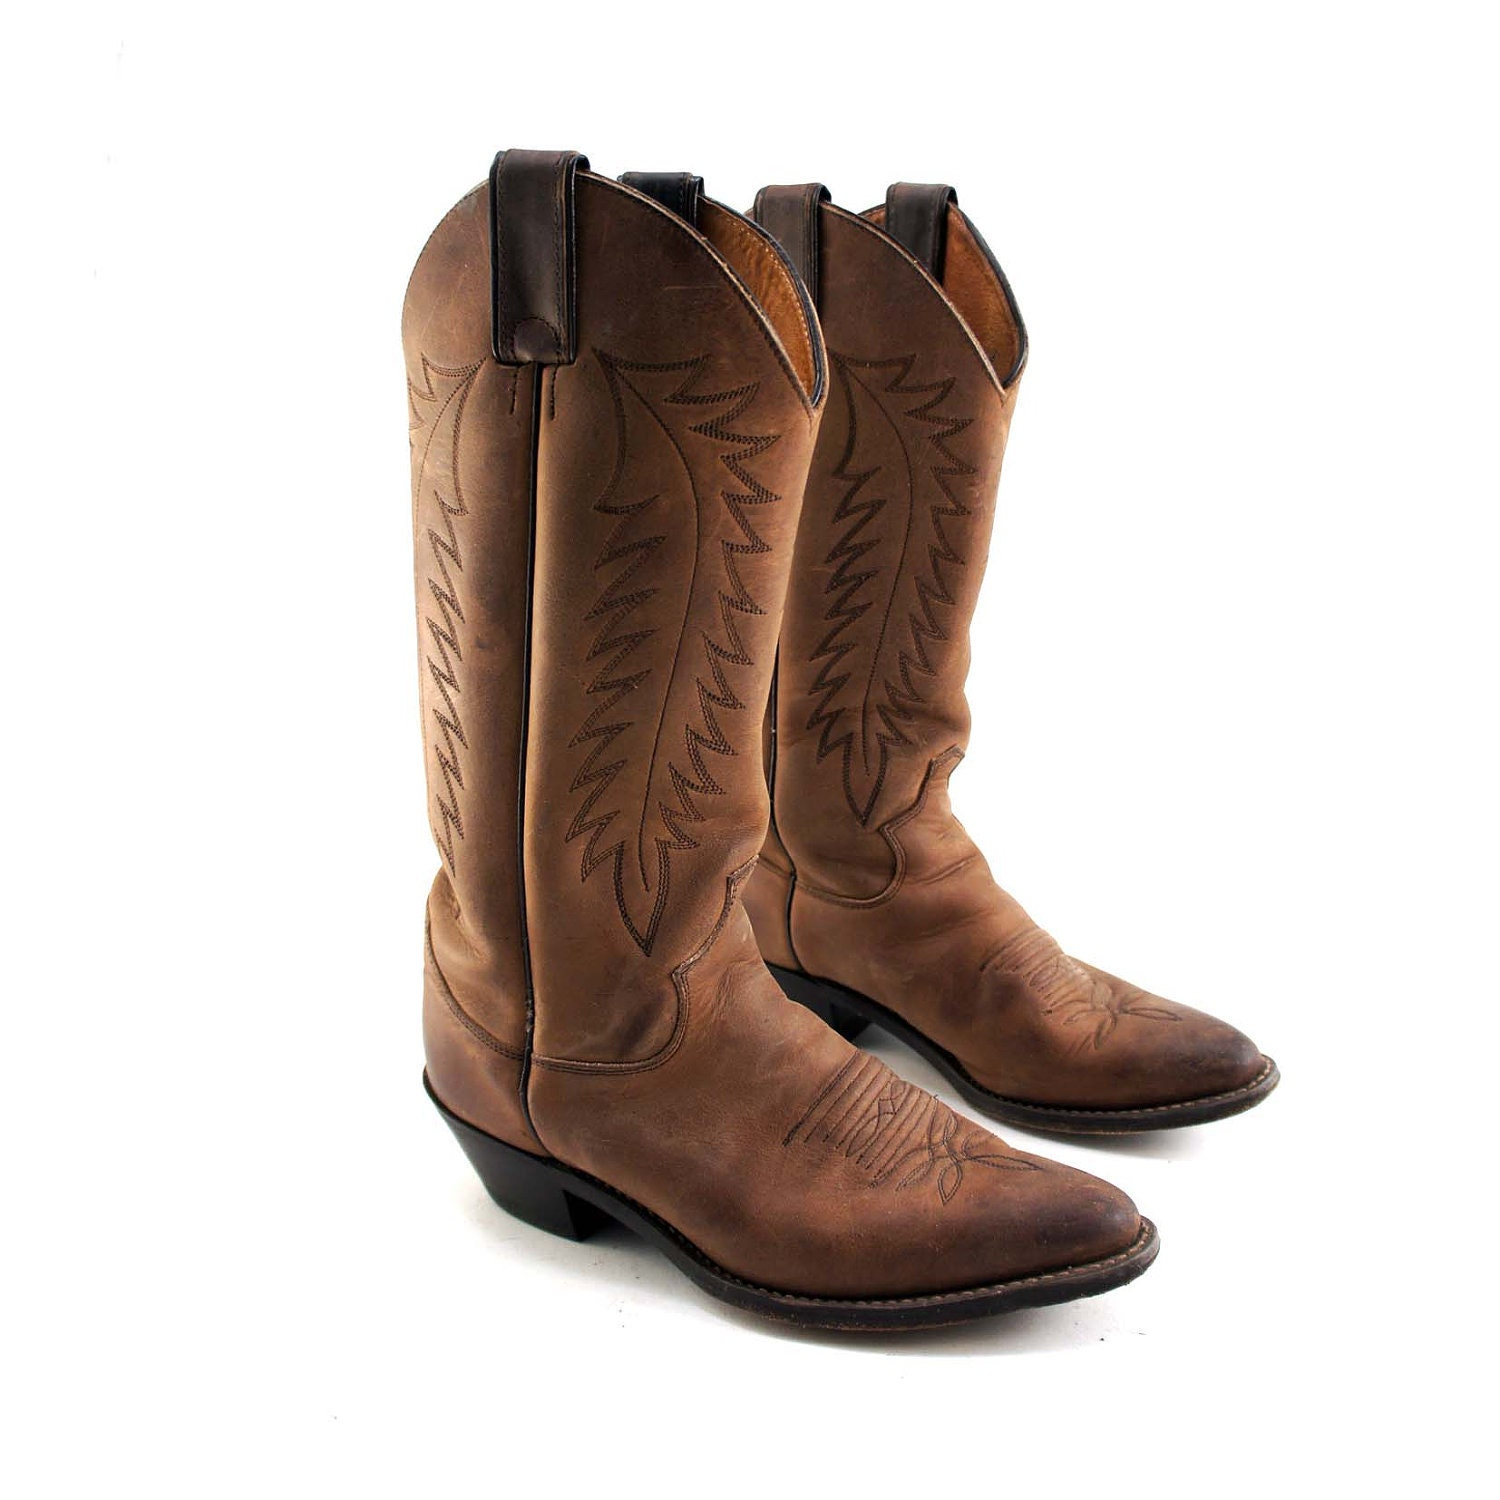 Brown boots for women - deals on 1001 Blocks